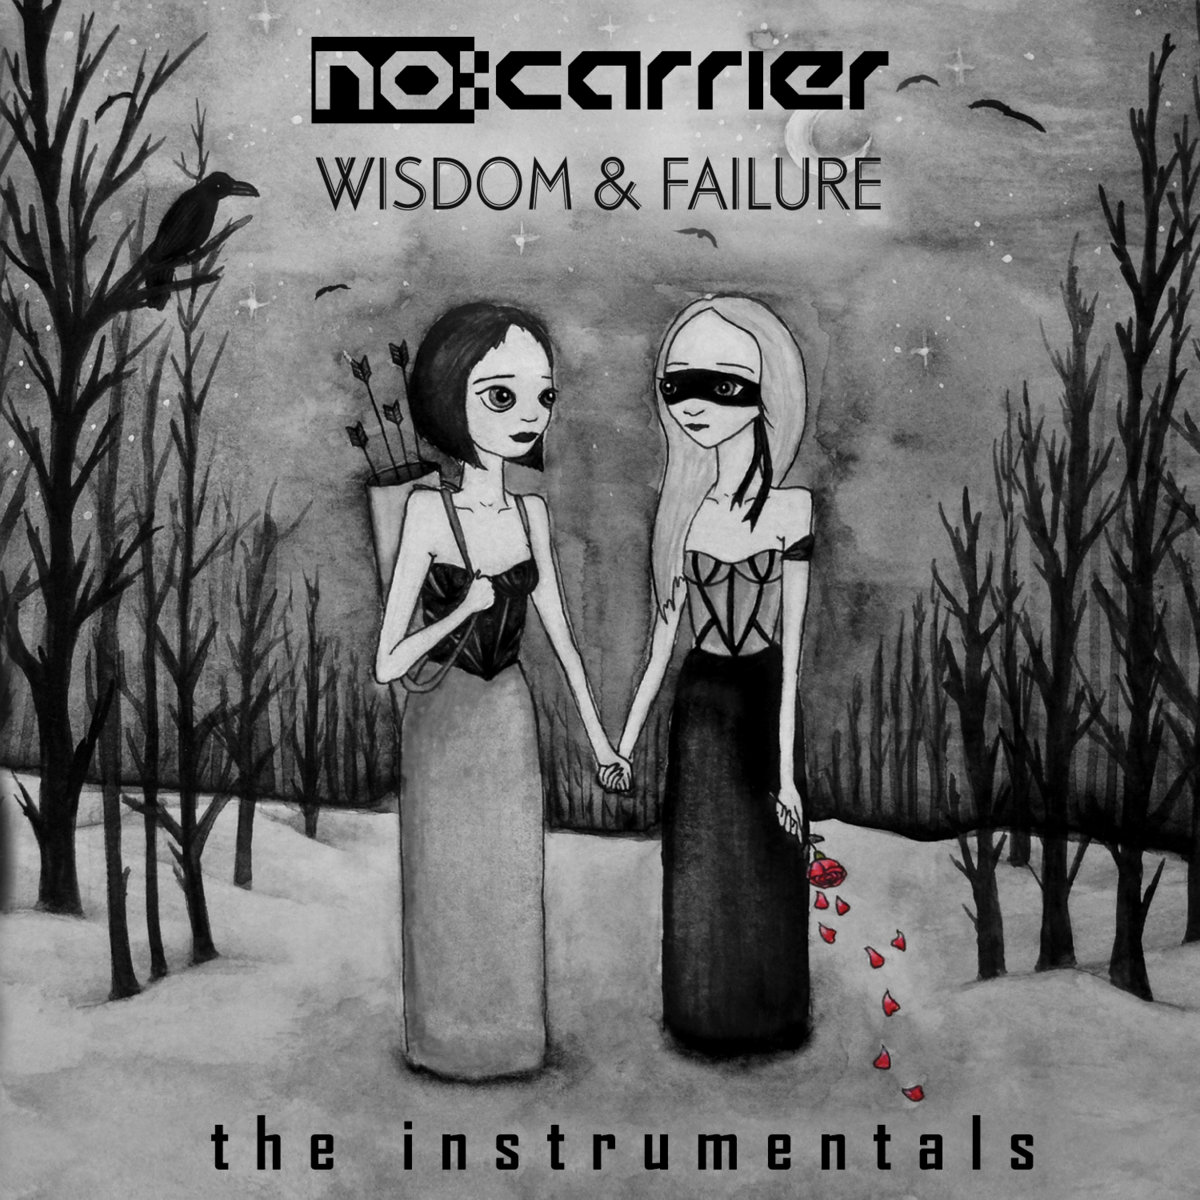 Wisdom & Failure - the instrumentals - FREE Download | no